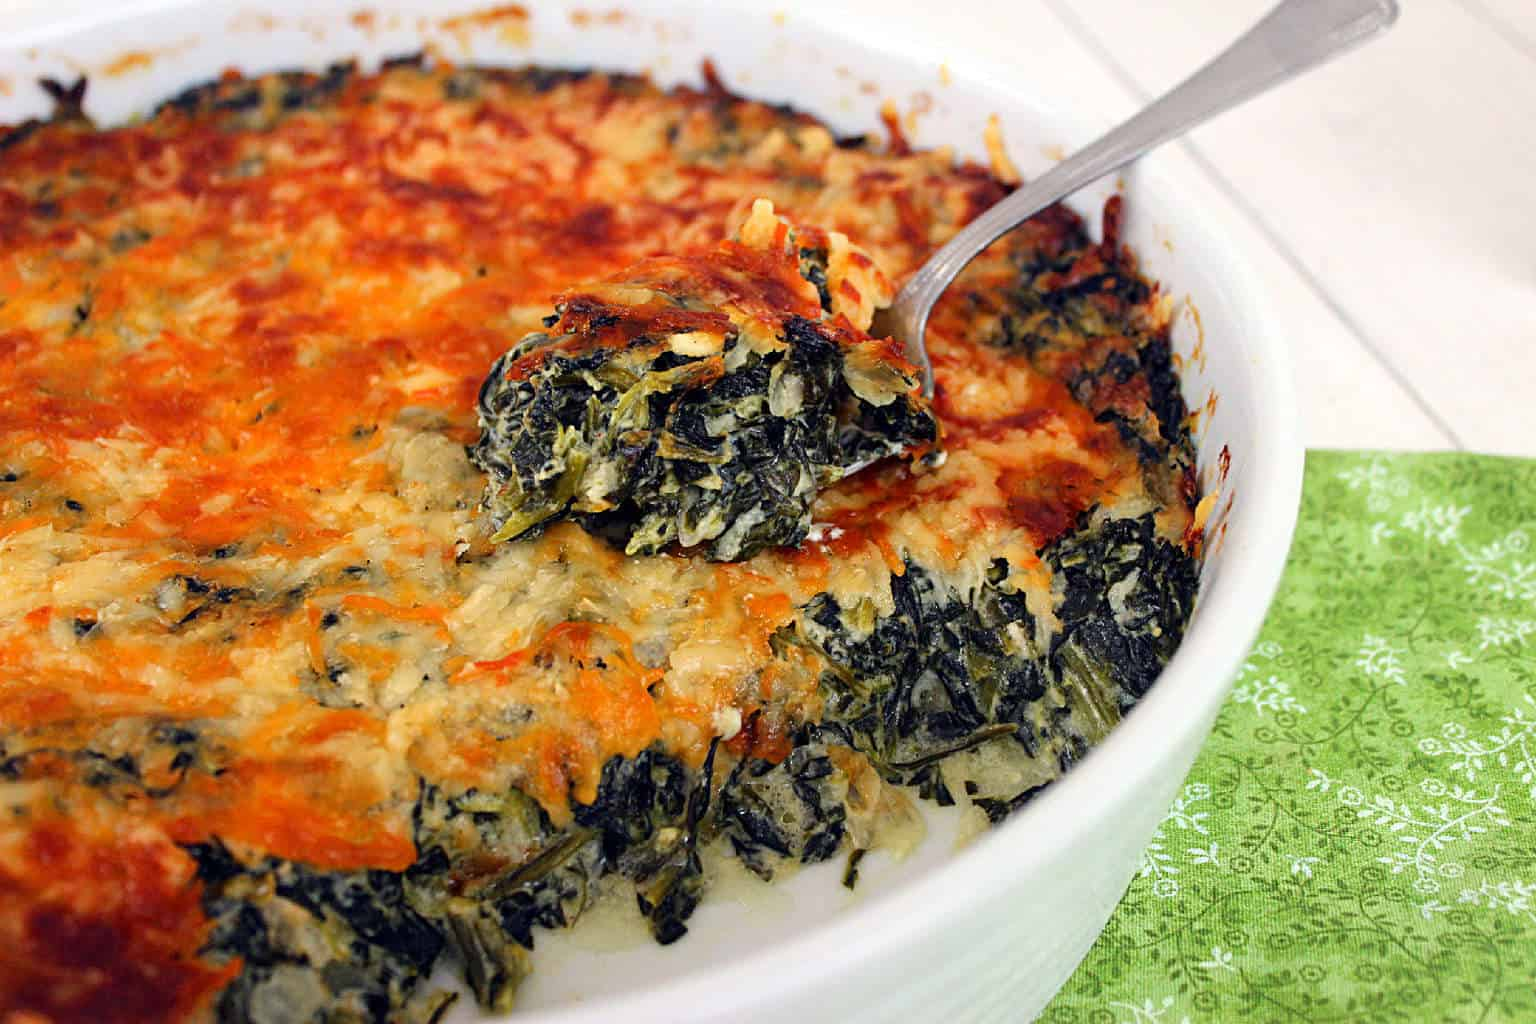 Popeye's Vegetable(Recipe:Cheesy Creamed Spinach Casserole)